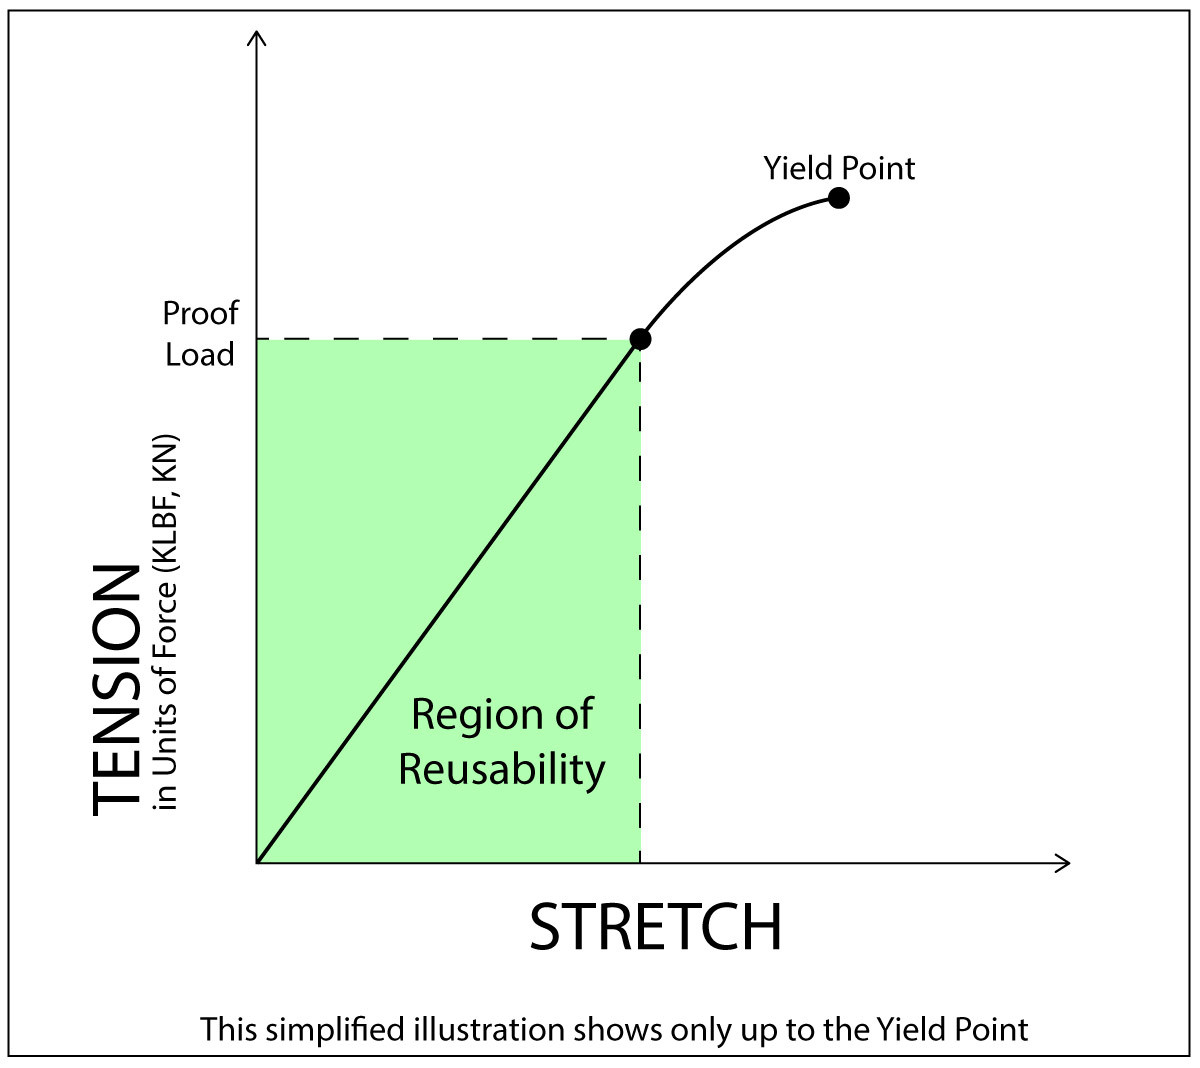 Graph shows the relationship of tension and stretch of a bolt to Proof Load and Yield Point